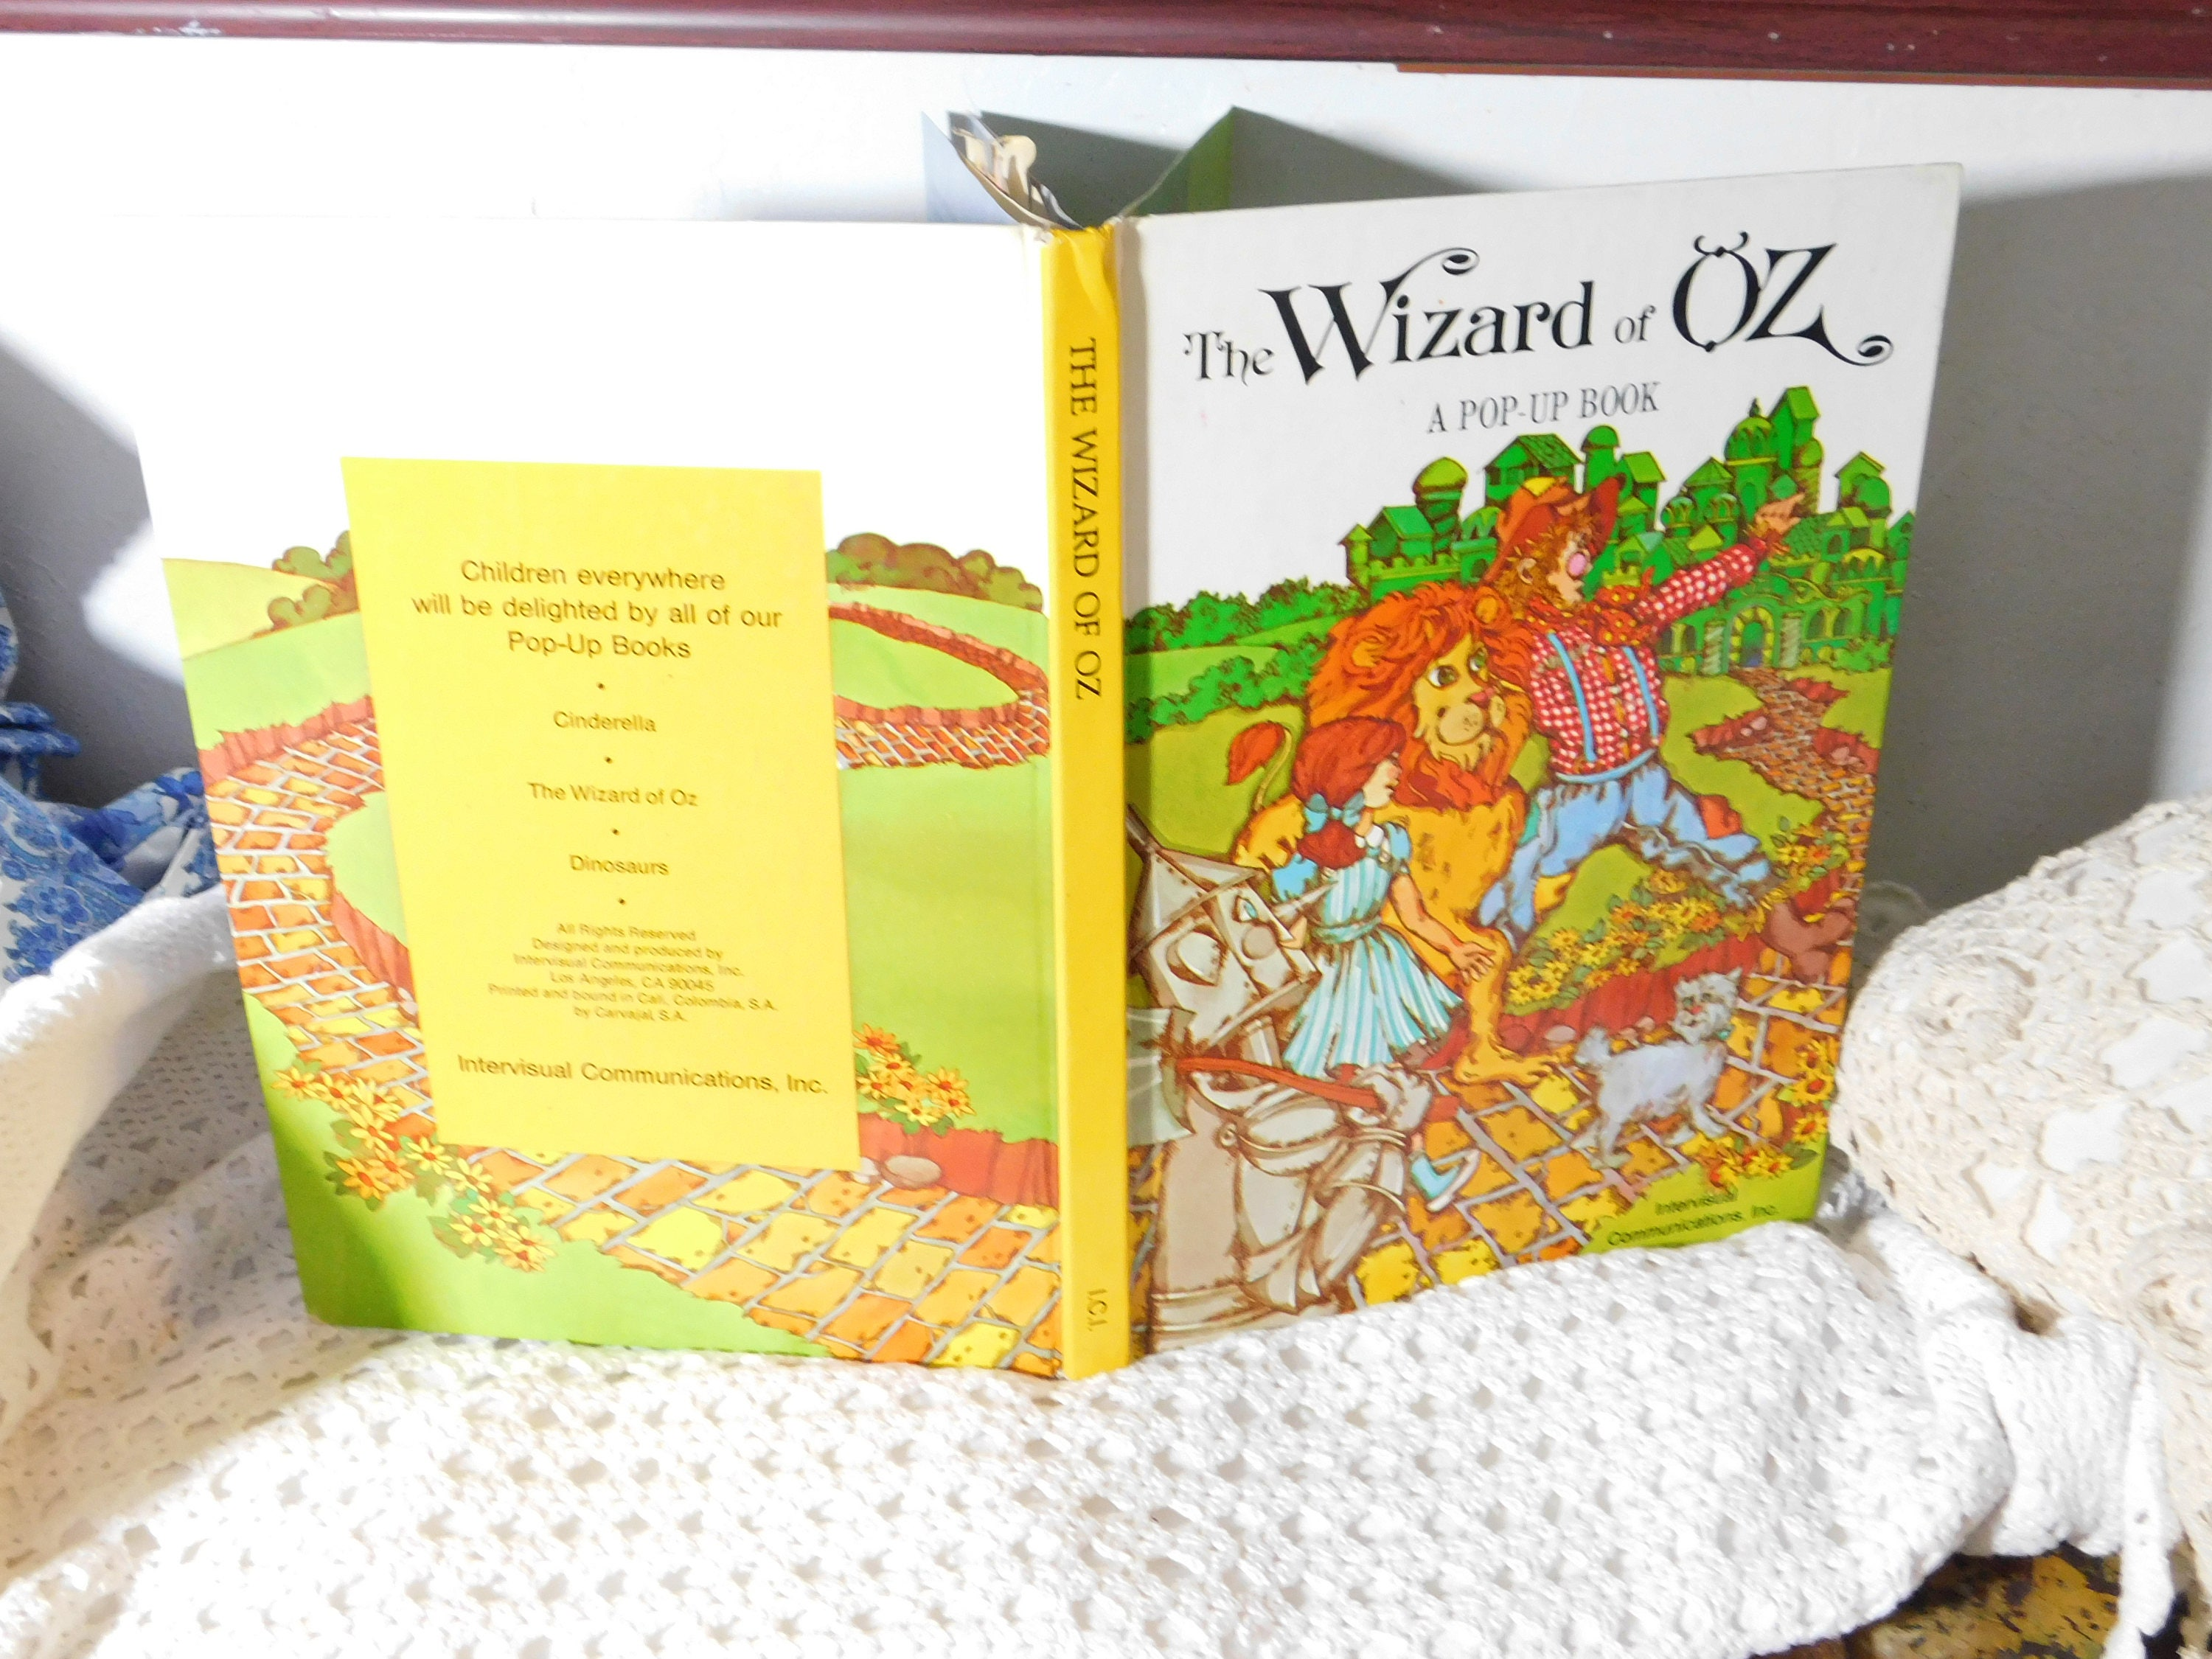 The Wizard of Oz Pop Up Book Intervisual Communications 1995